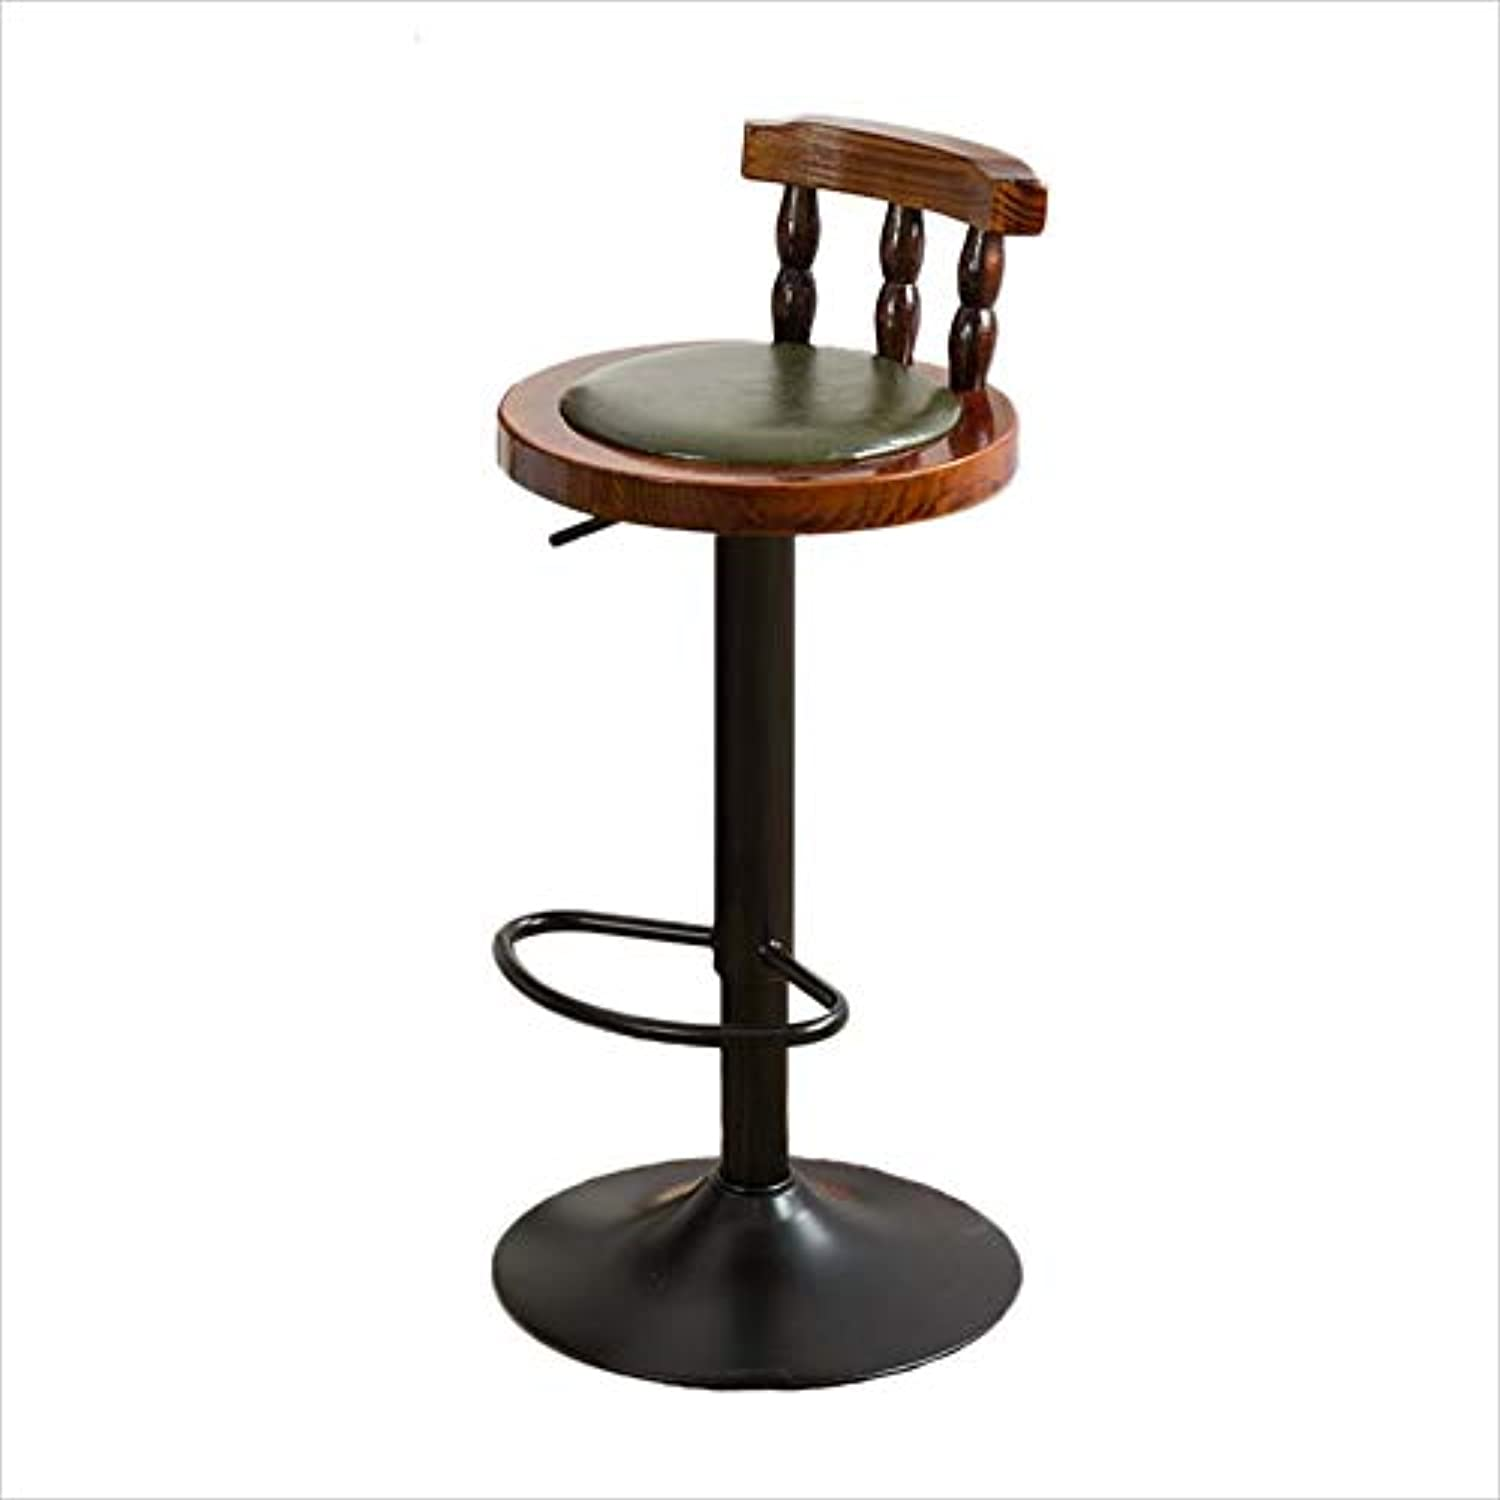 Lh yu Fashion Personality Solid Wood Bar Chair Bar Chair High Stool Round Stool Household More Comfortable